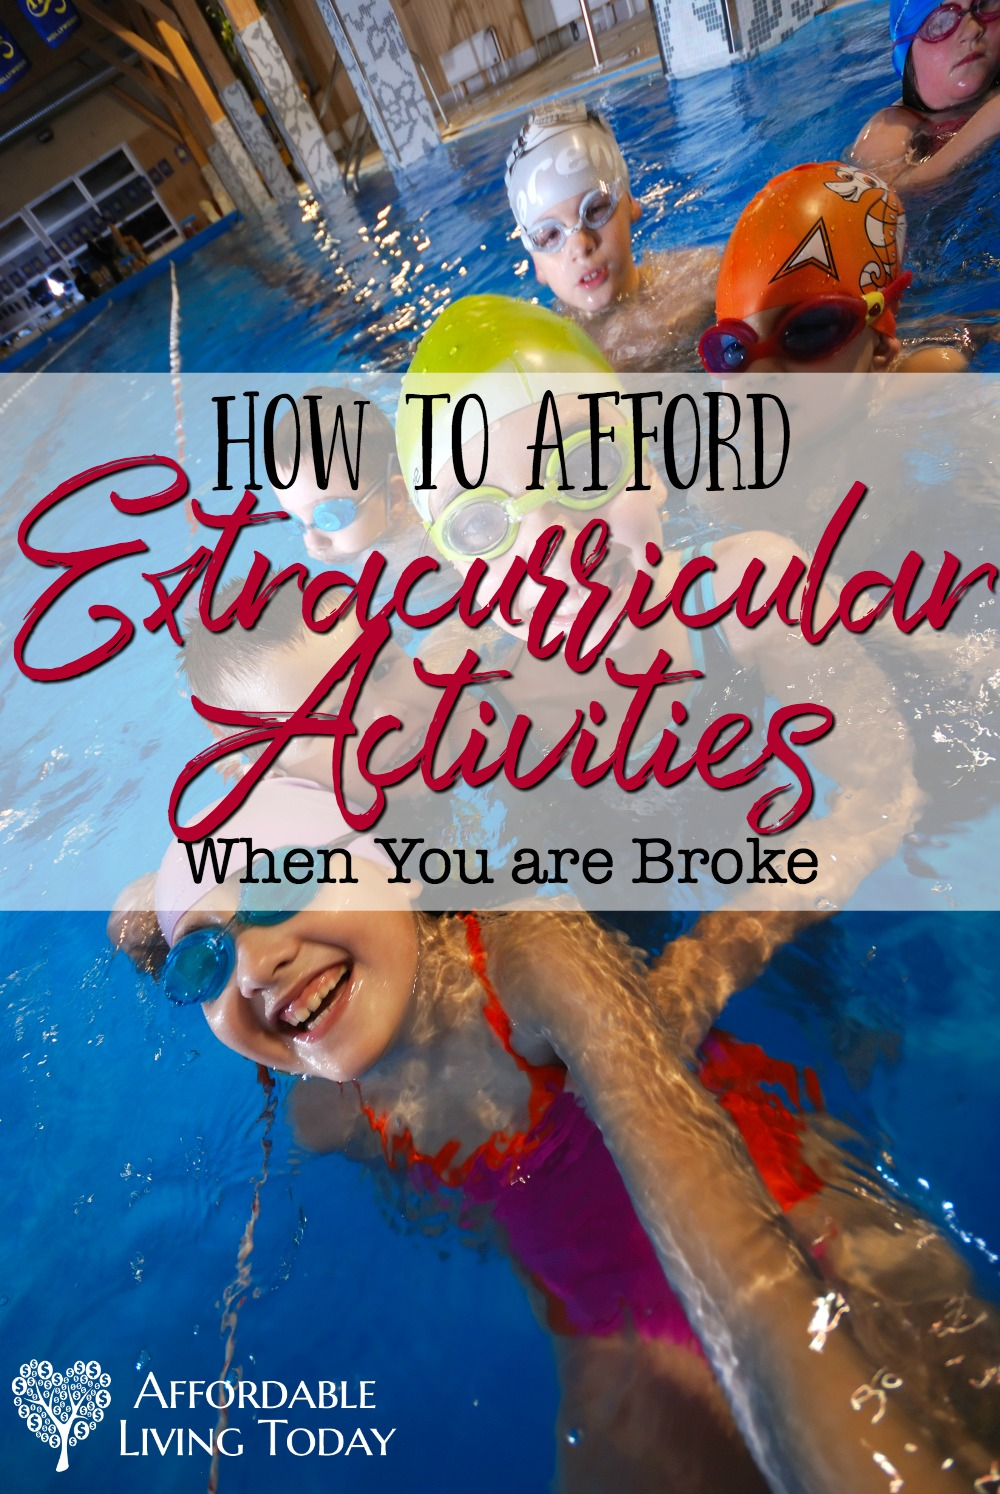 Extracurricular activities for kids can be super expensive. But, there are ways to help your kids have fun while saving money.